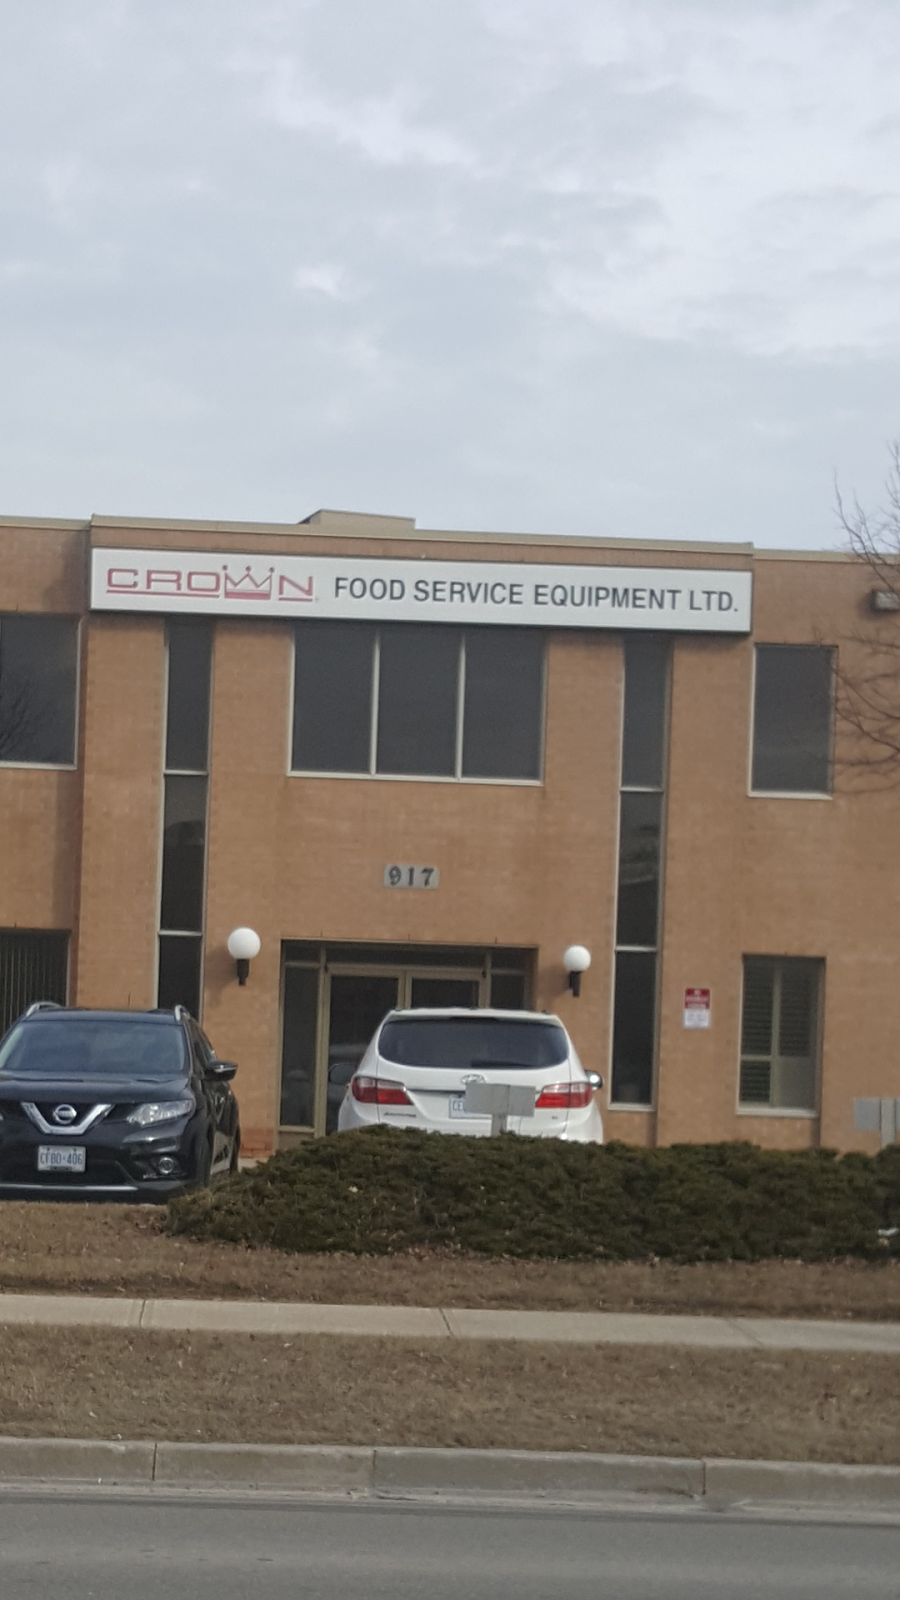 Crown Food Service Equipment | store | 917 Edgeley Blvd, Concord, ON L4K 4V9, Canada | 9057615649 OR +1 905-761-5649